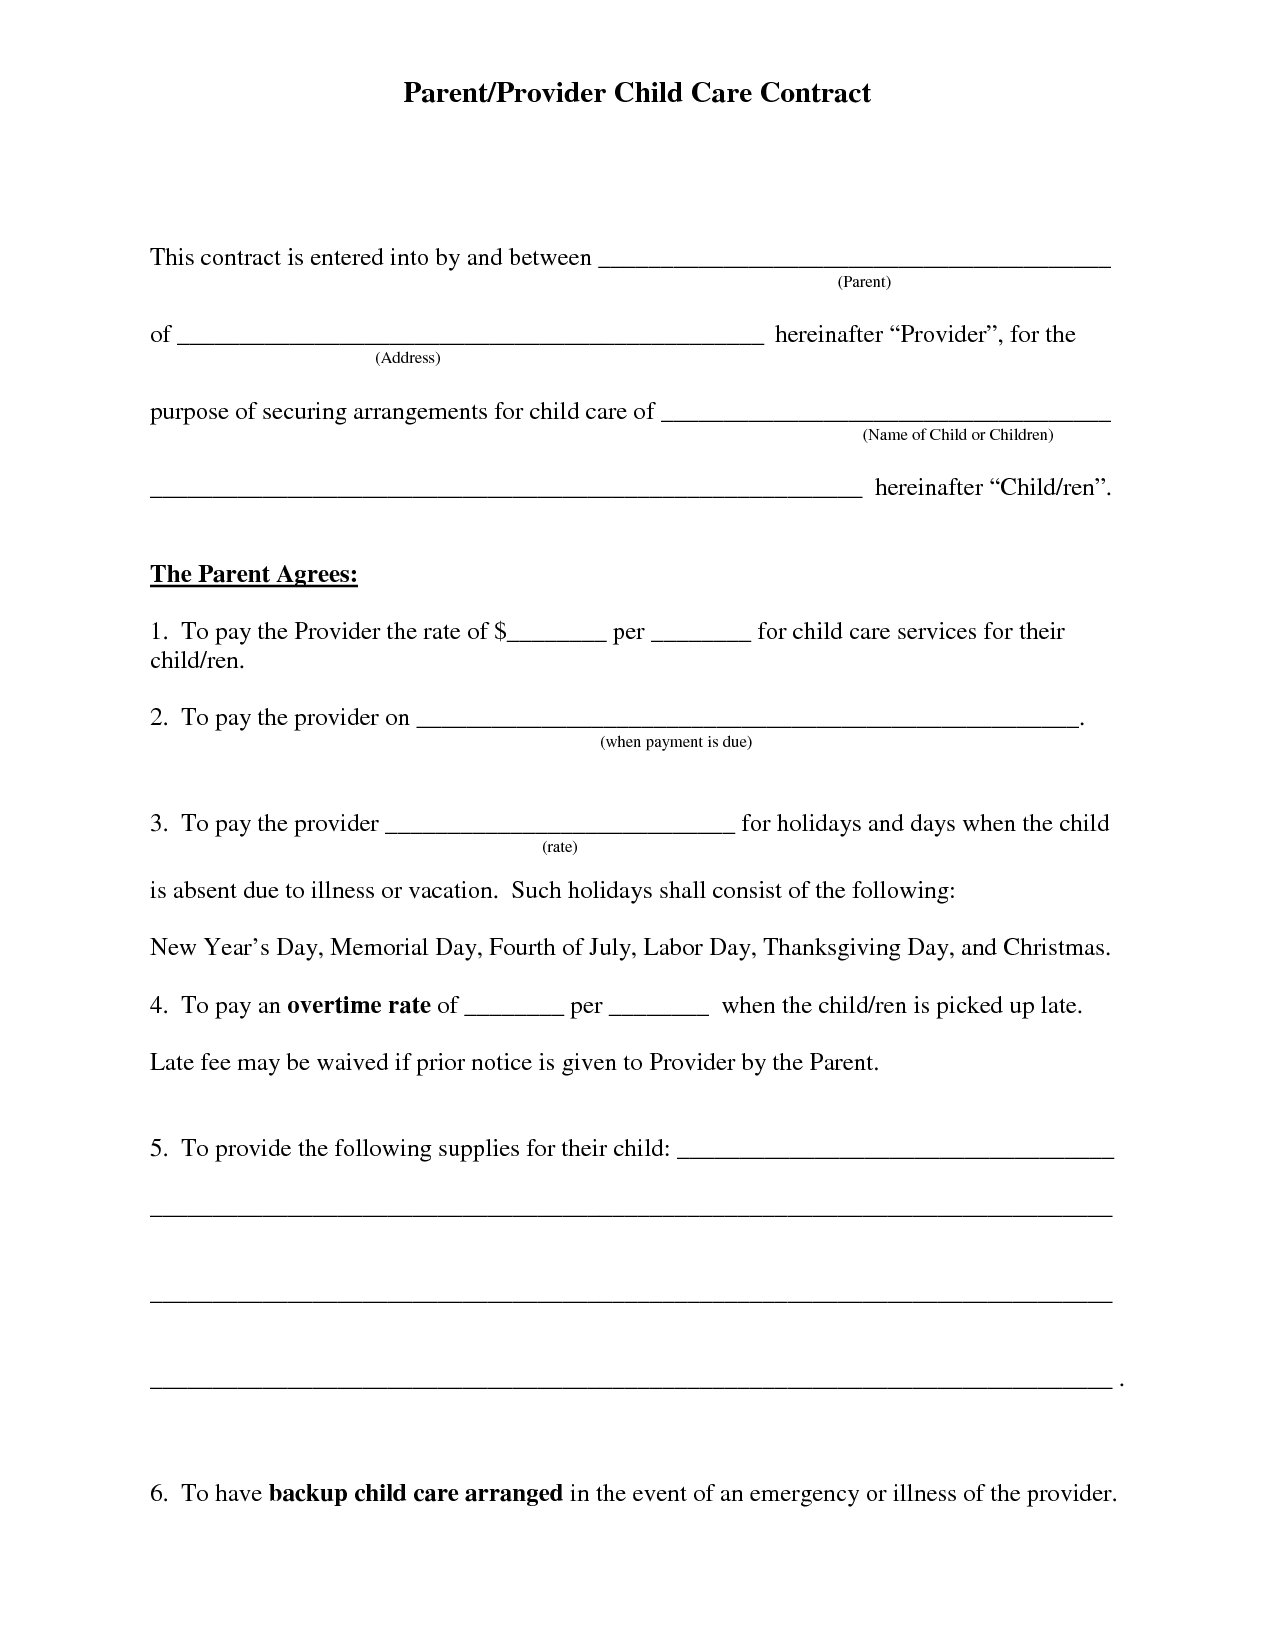 Free Daycare Contract Forms | Daycare Forms | Daycare Contract - Free Printable Daycare Forms For Parents